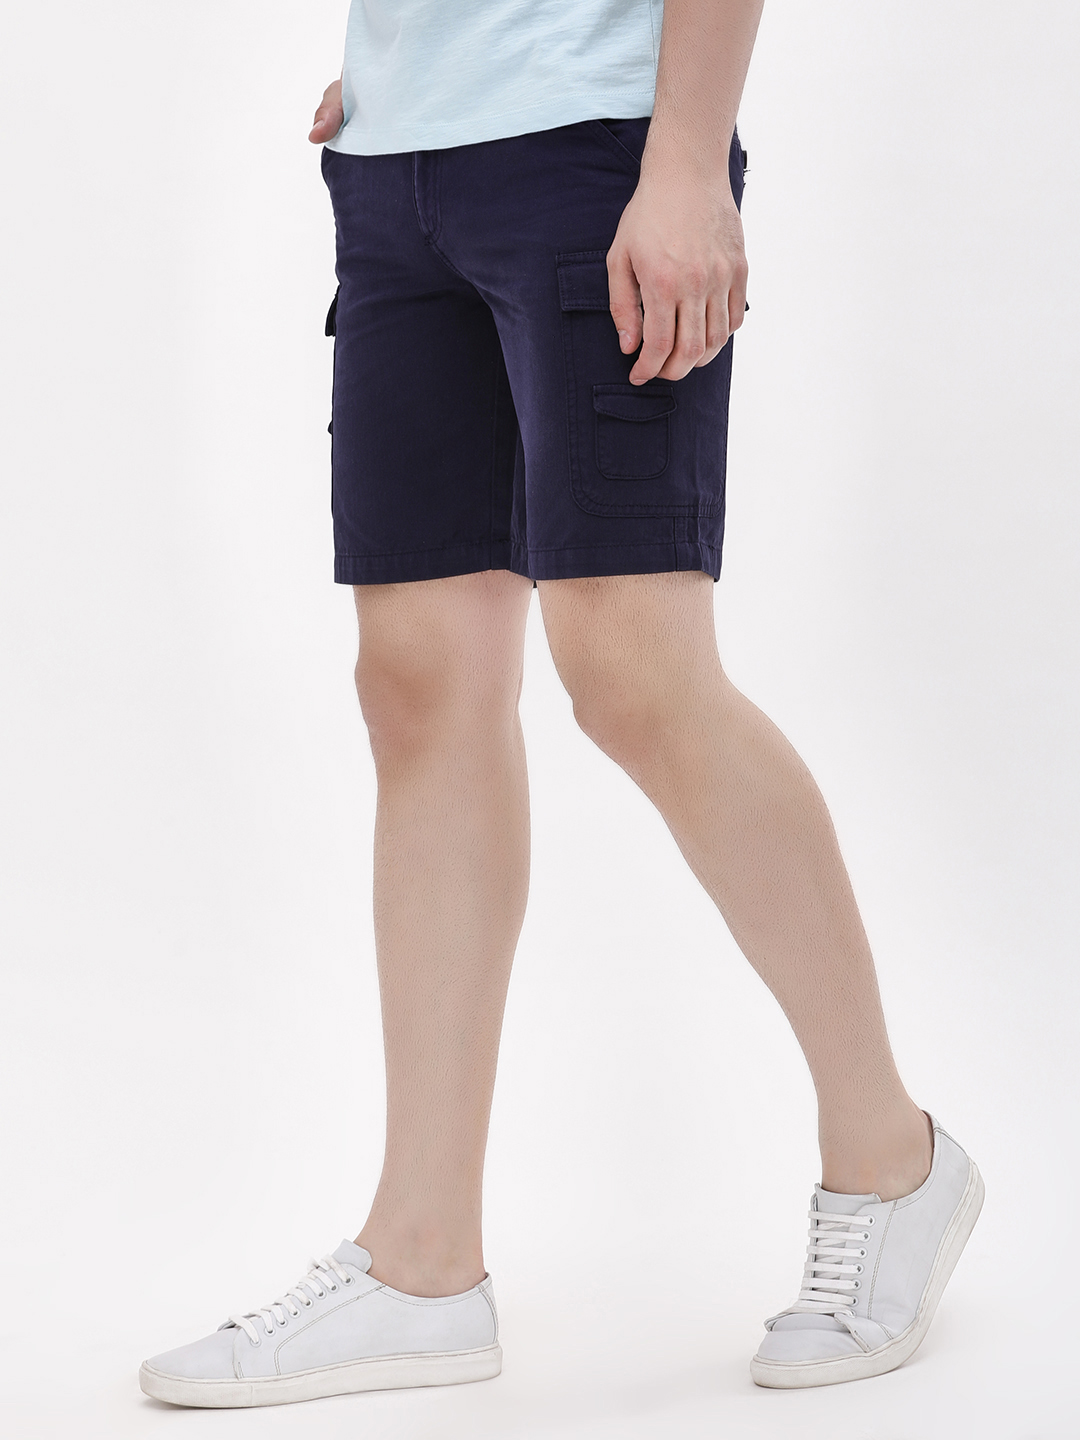 Blue Saint Blue Slim Fit Shorts With Cargo Pockets 1